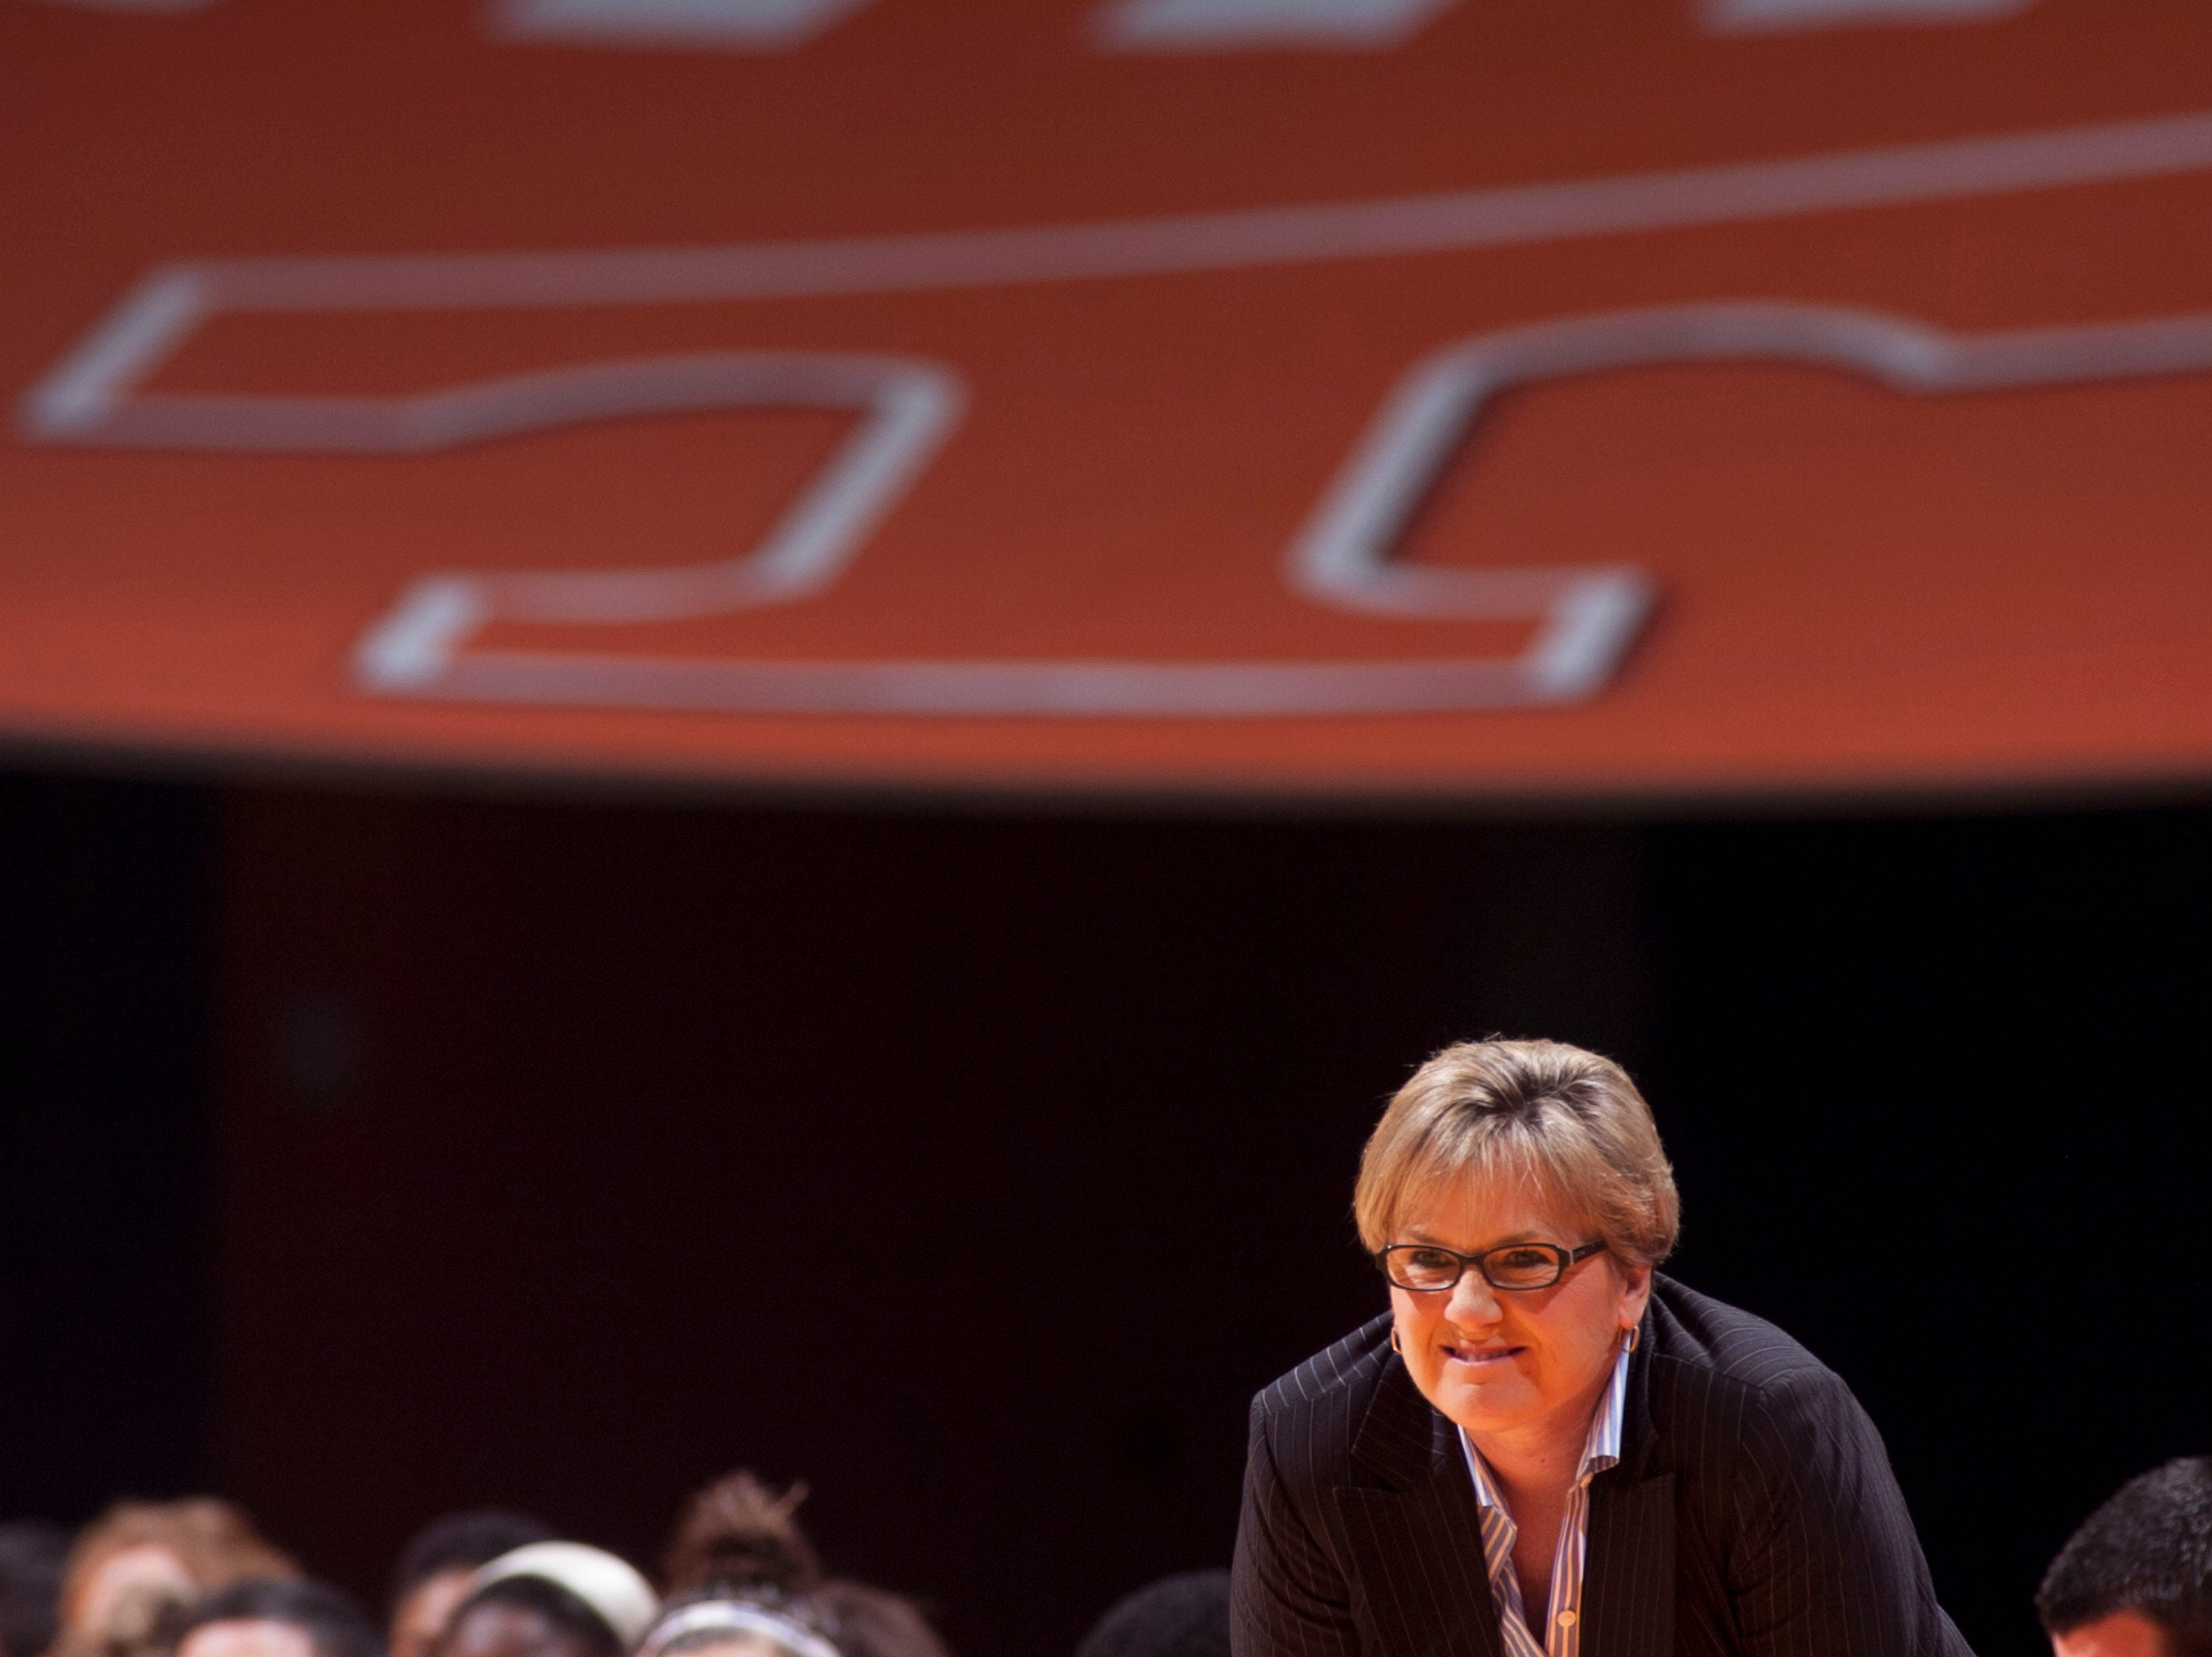 Tennessee head coach Holly Warlick watches her team go up against Rice at Thompson-Boling Arena on Thursday, November 15, 2012. Tennessee defeated Rice 101-48.